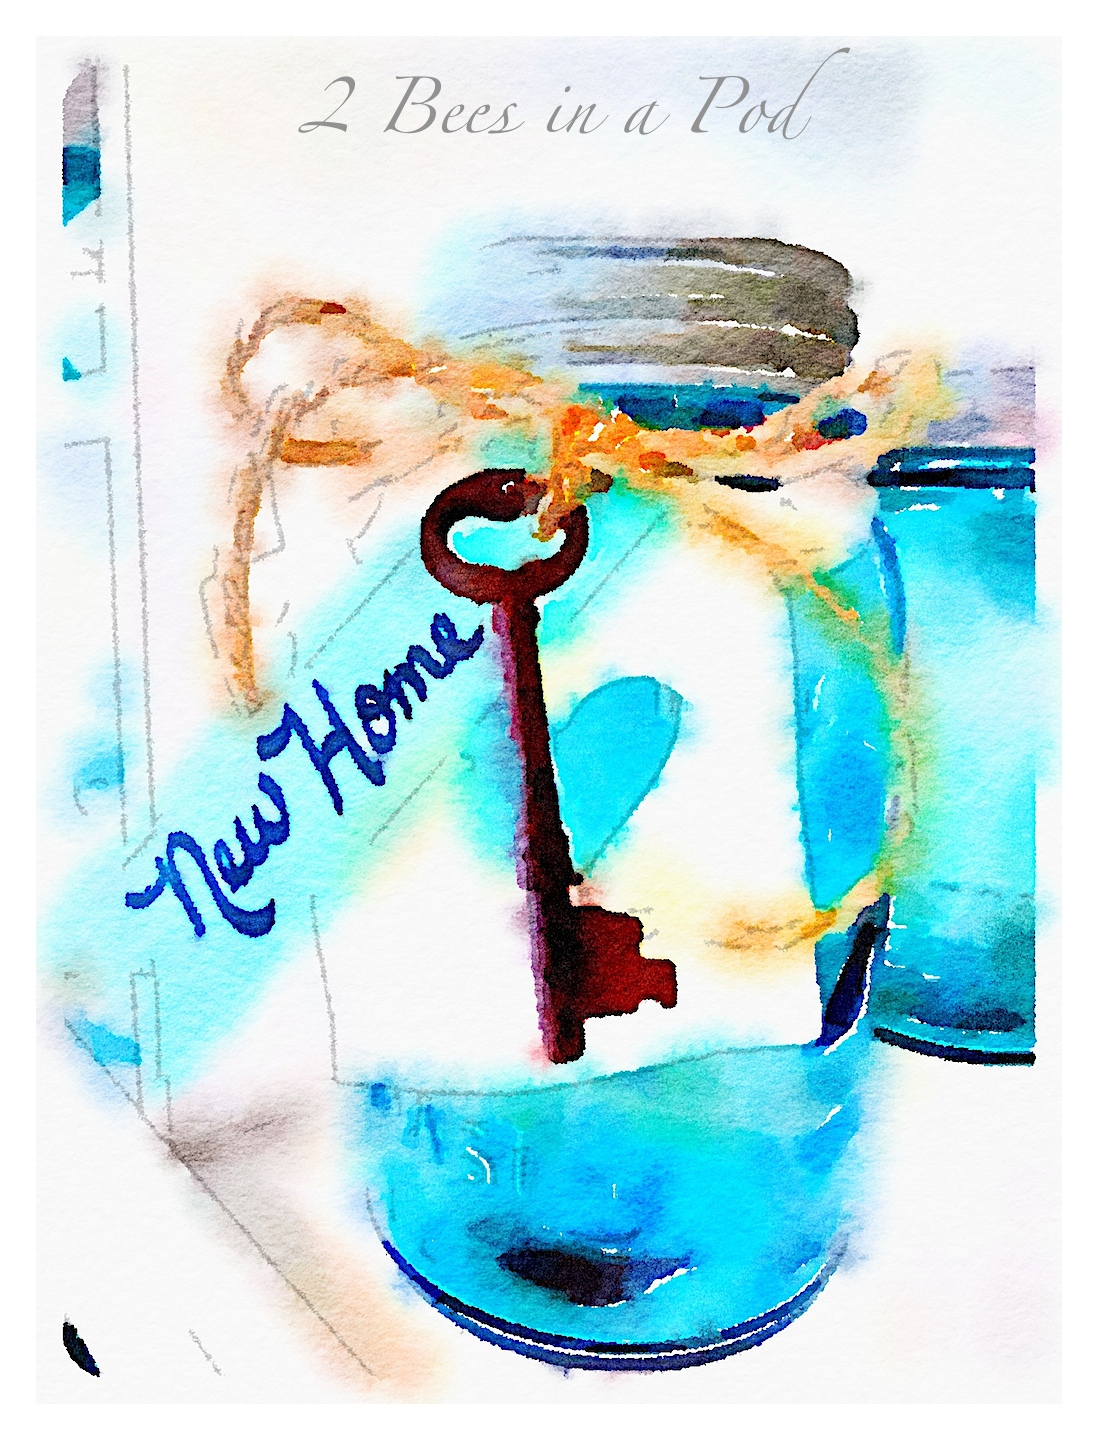 A cute and creative housewarming gift - vintage aqua Mason jar, antique skeleton key, DIY pottery clay tag. Fill the jar with treats of your choice.